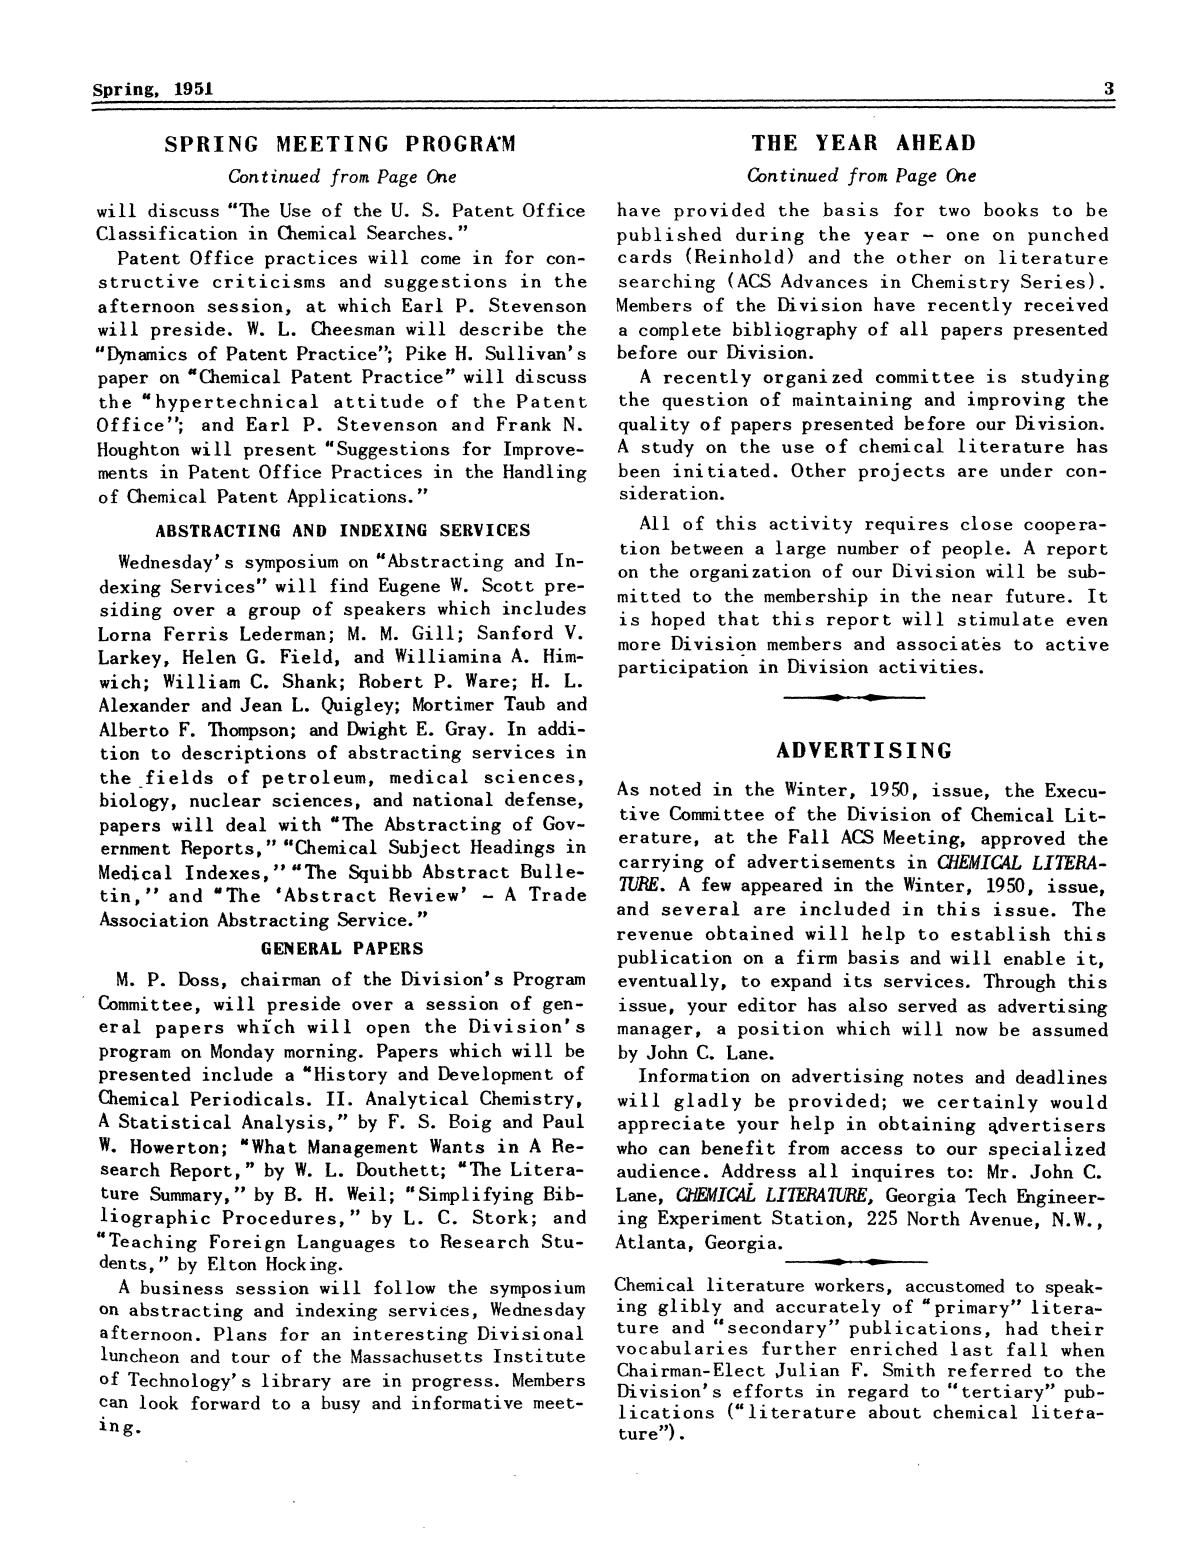 Chemical Literature, Volume 3, Number 1, Spring 1951                                                                                                      3